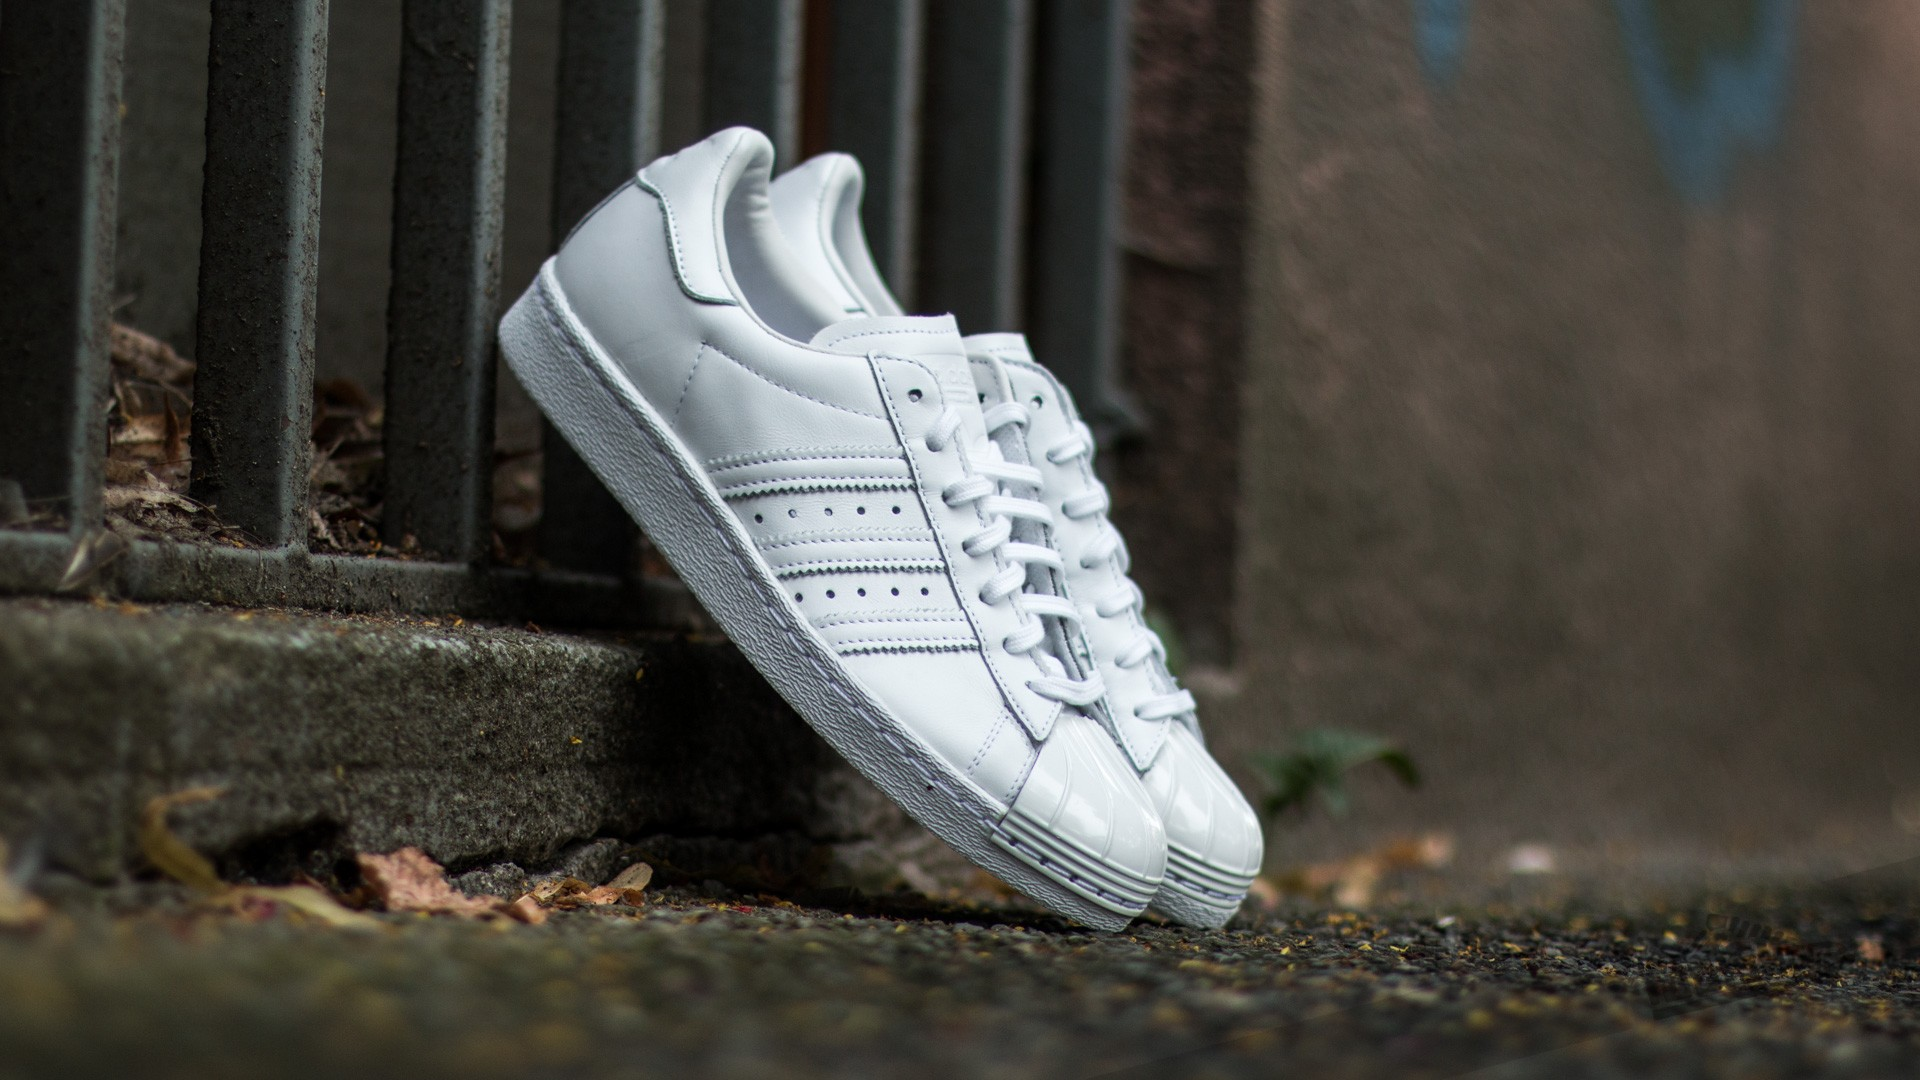 new concept 8d7ab 5fbc7 adidas Superstar 80s Metal Toe W Ftw White/ Ftw White/ Core ...